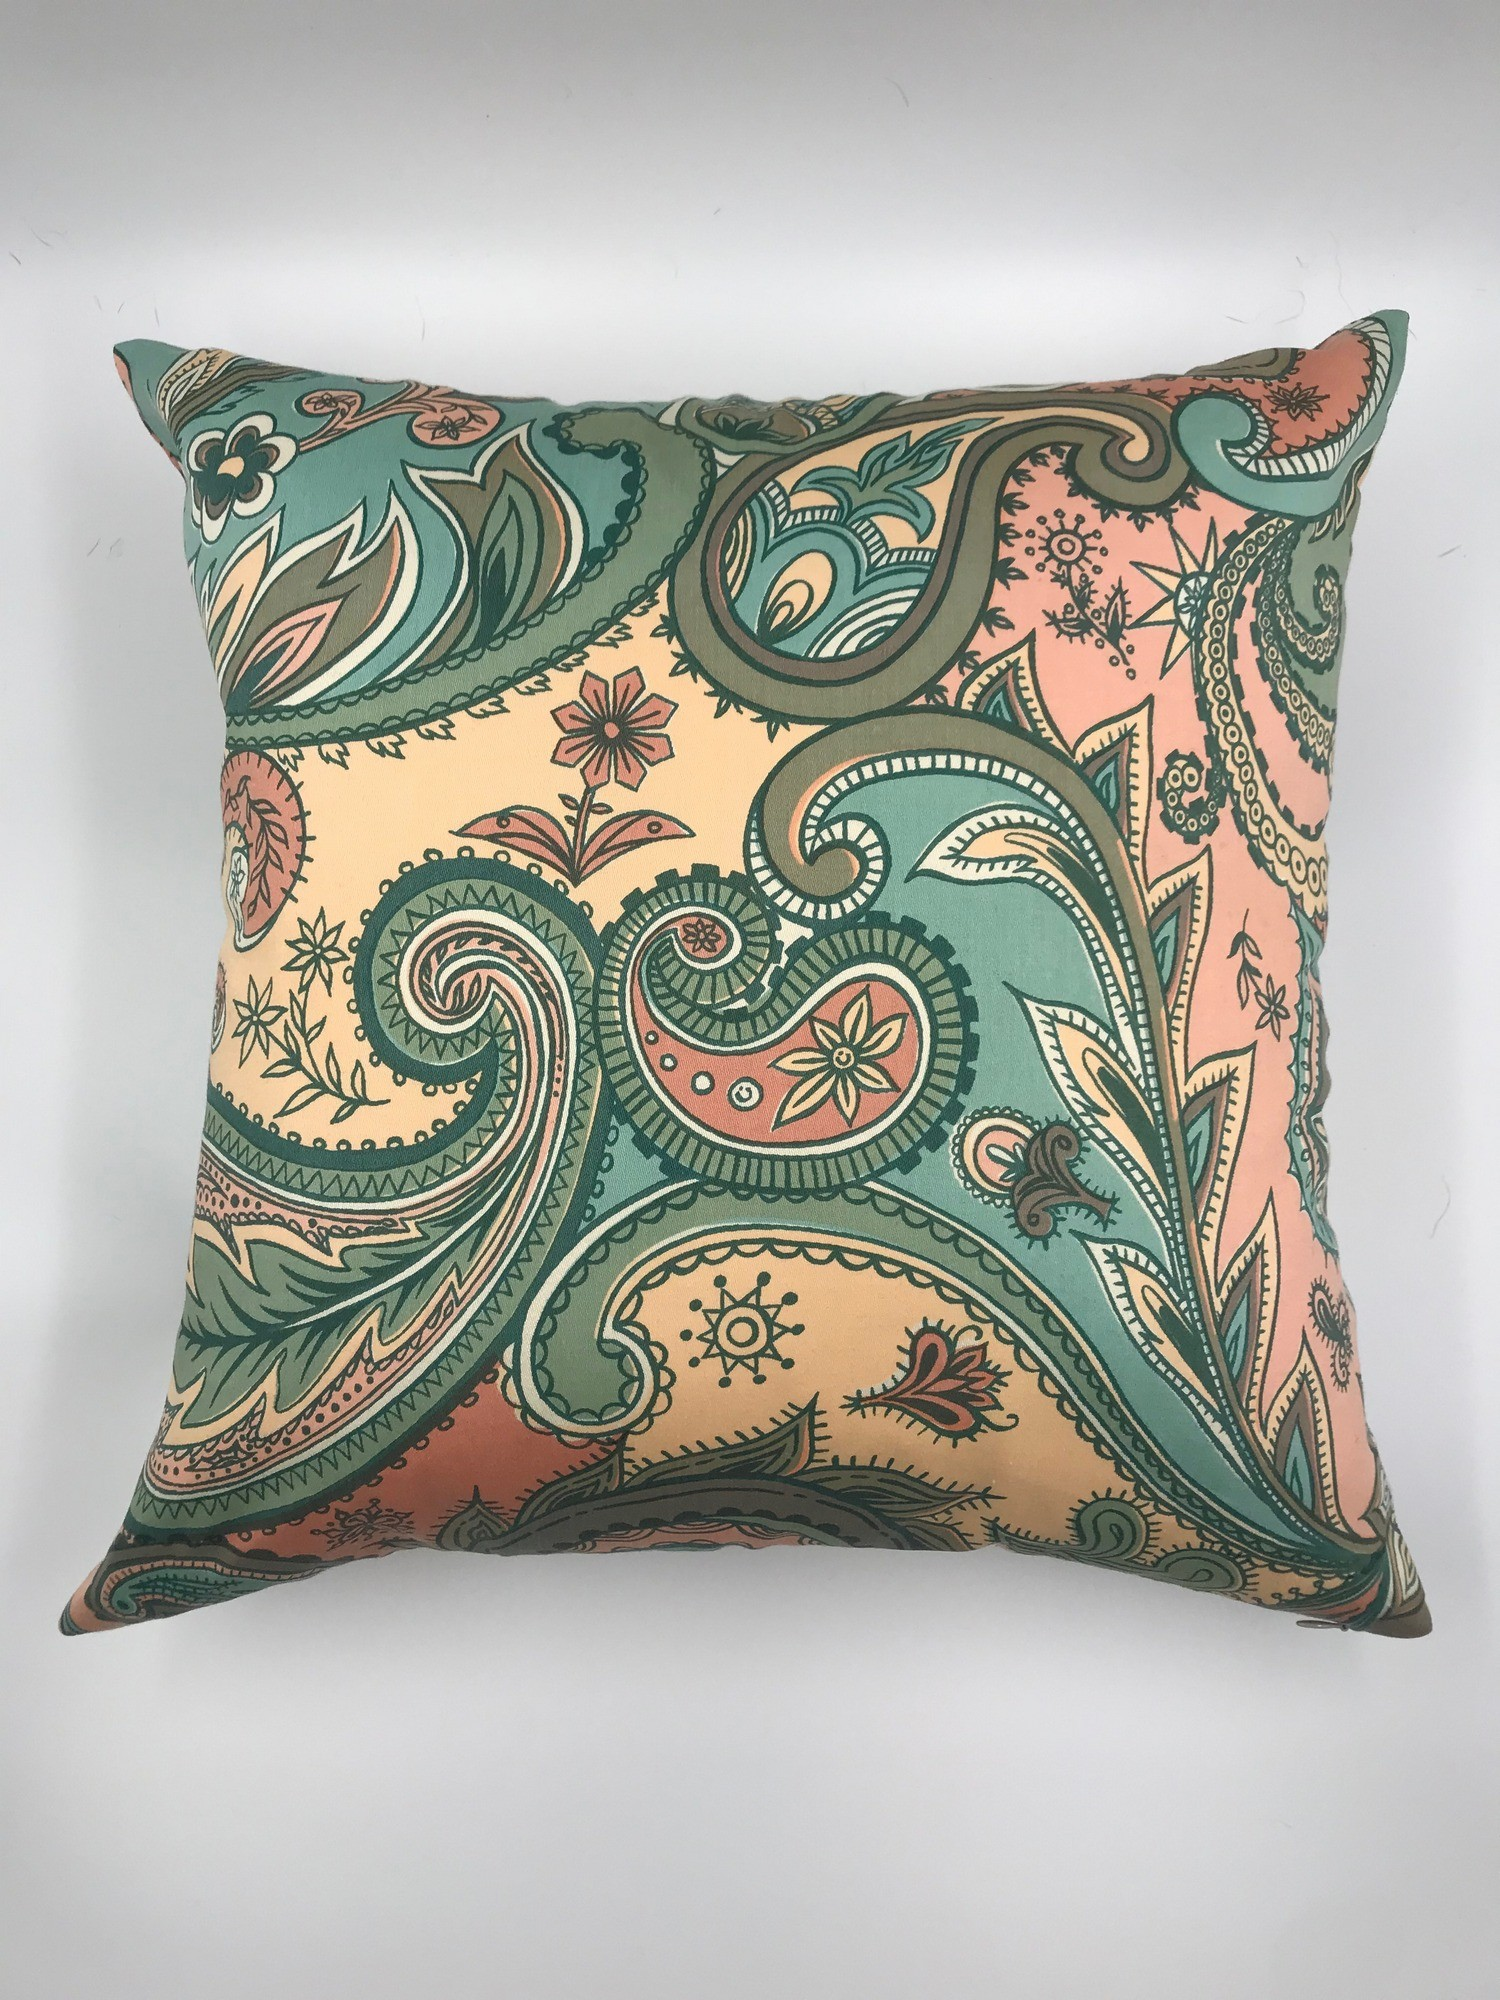 Buy Hand made decorative pillow, Handmade cushion vintage style, Real cotton pillow style 60s, Сraftsman's pillow